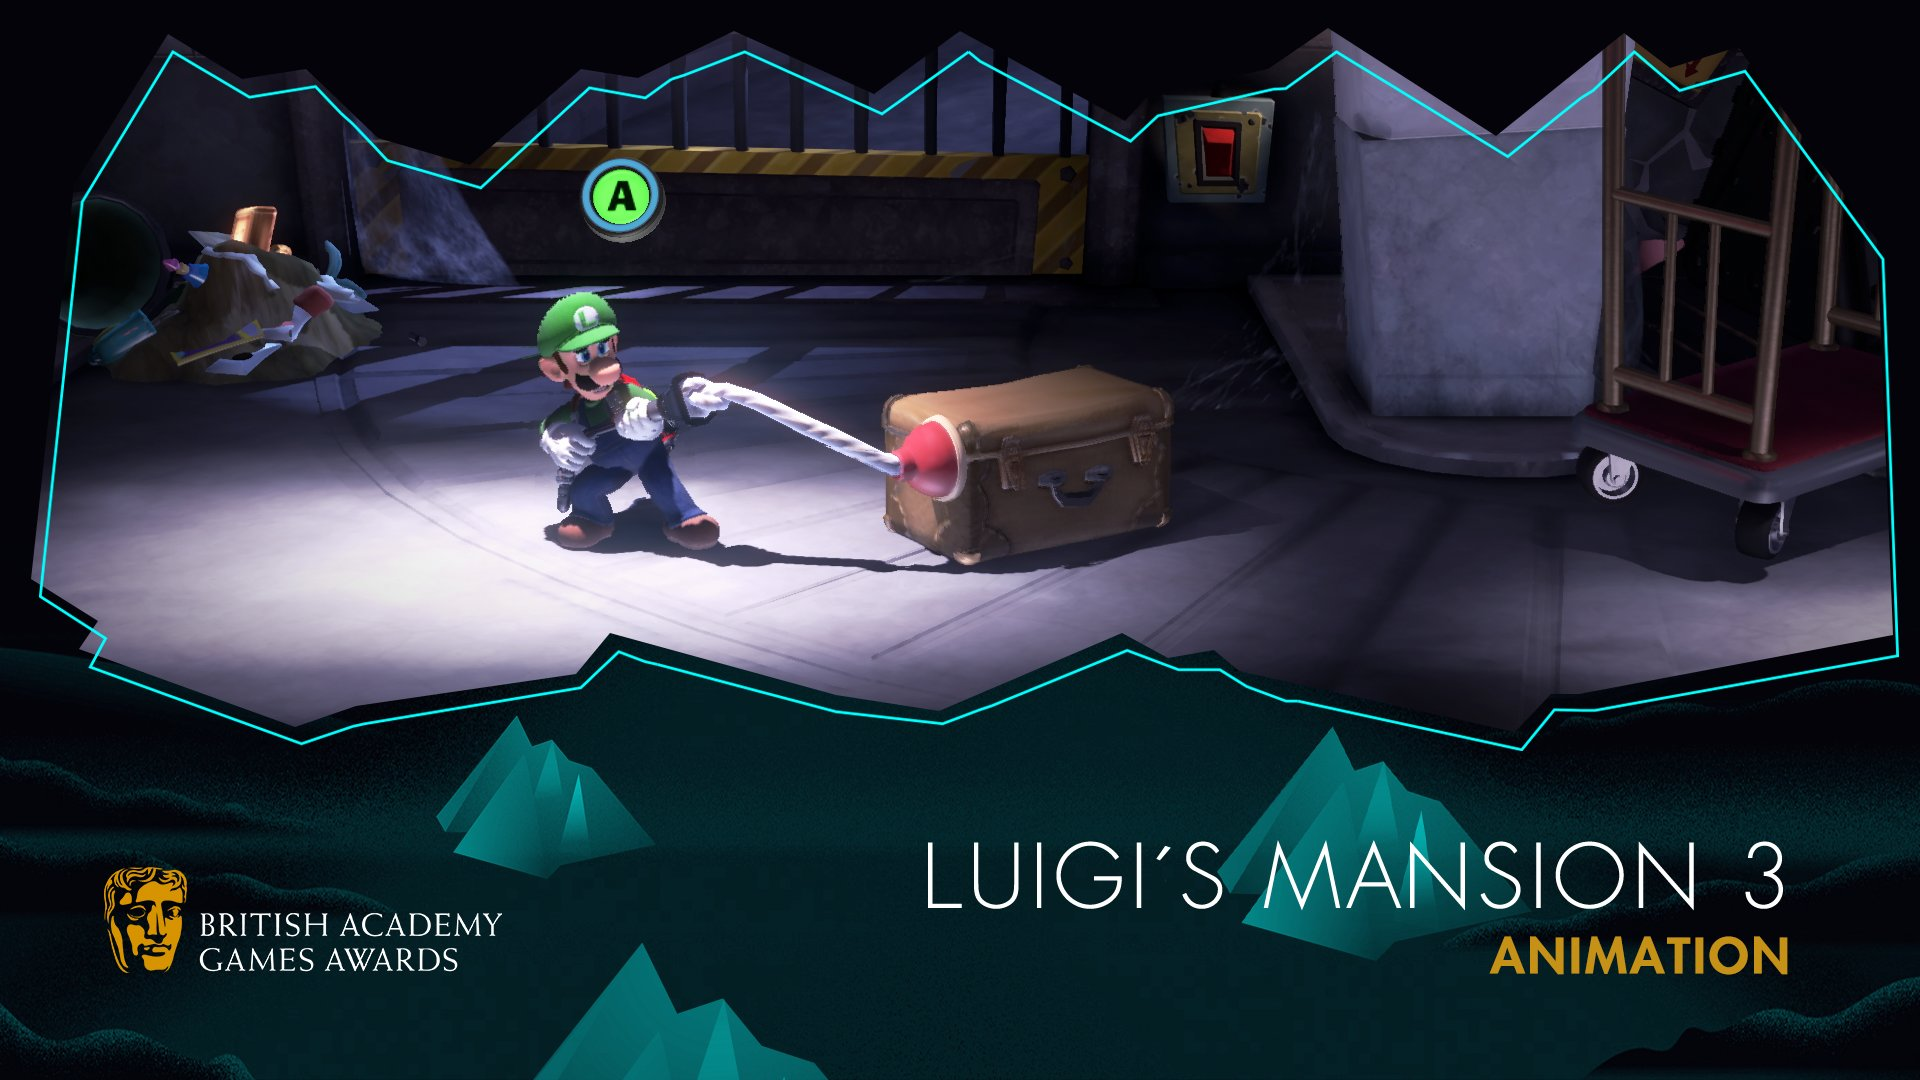 Luigi Mansion 3 Bafta Games Awards 2020